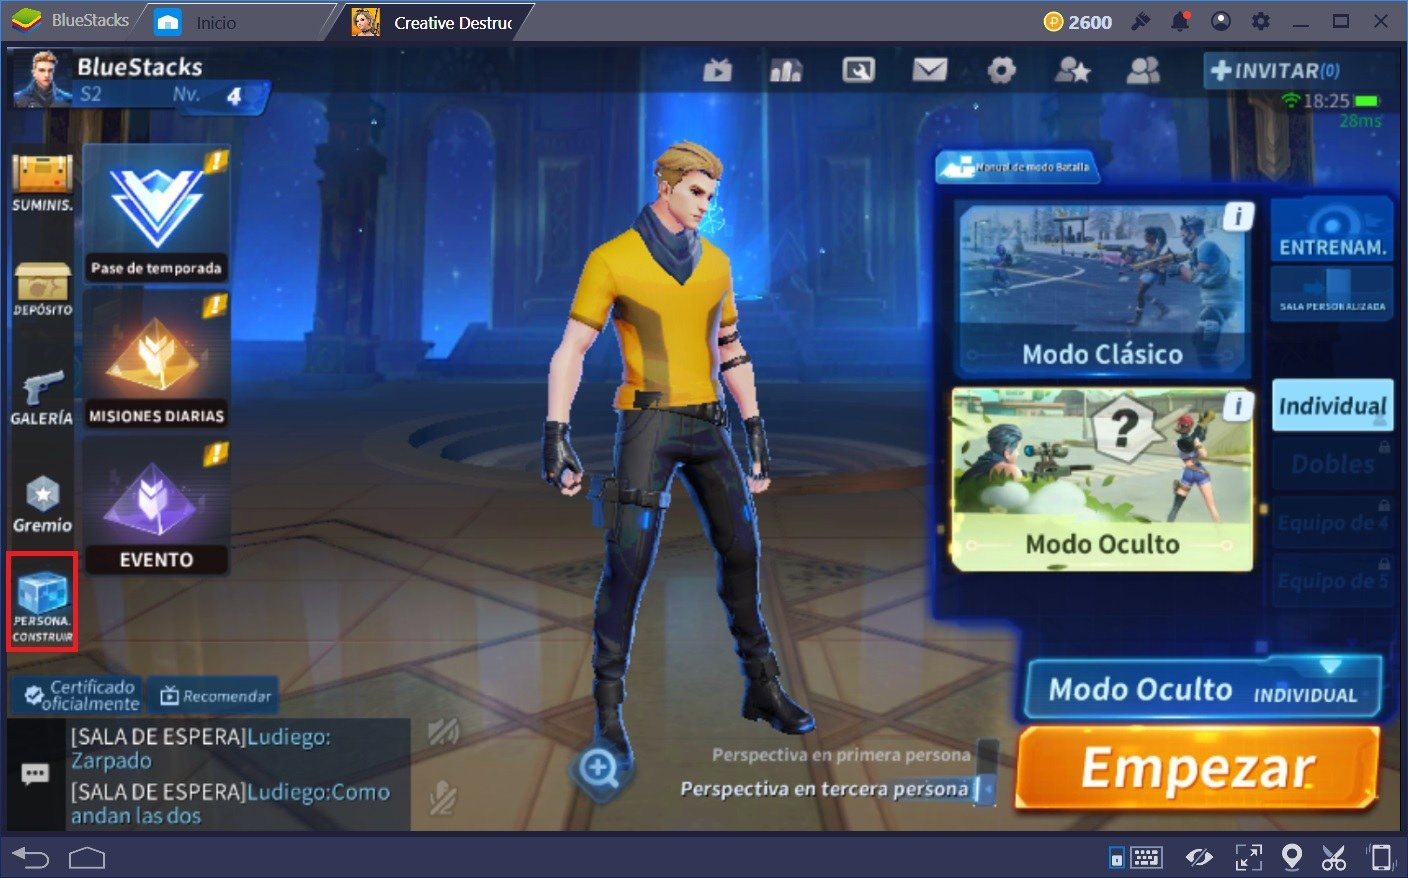 Tips Para Mejorar en Creative Destruction